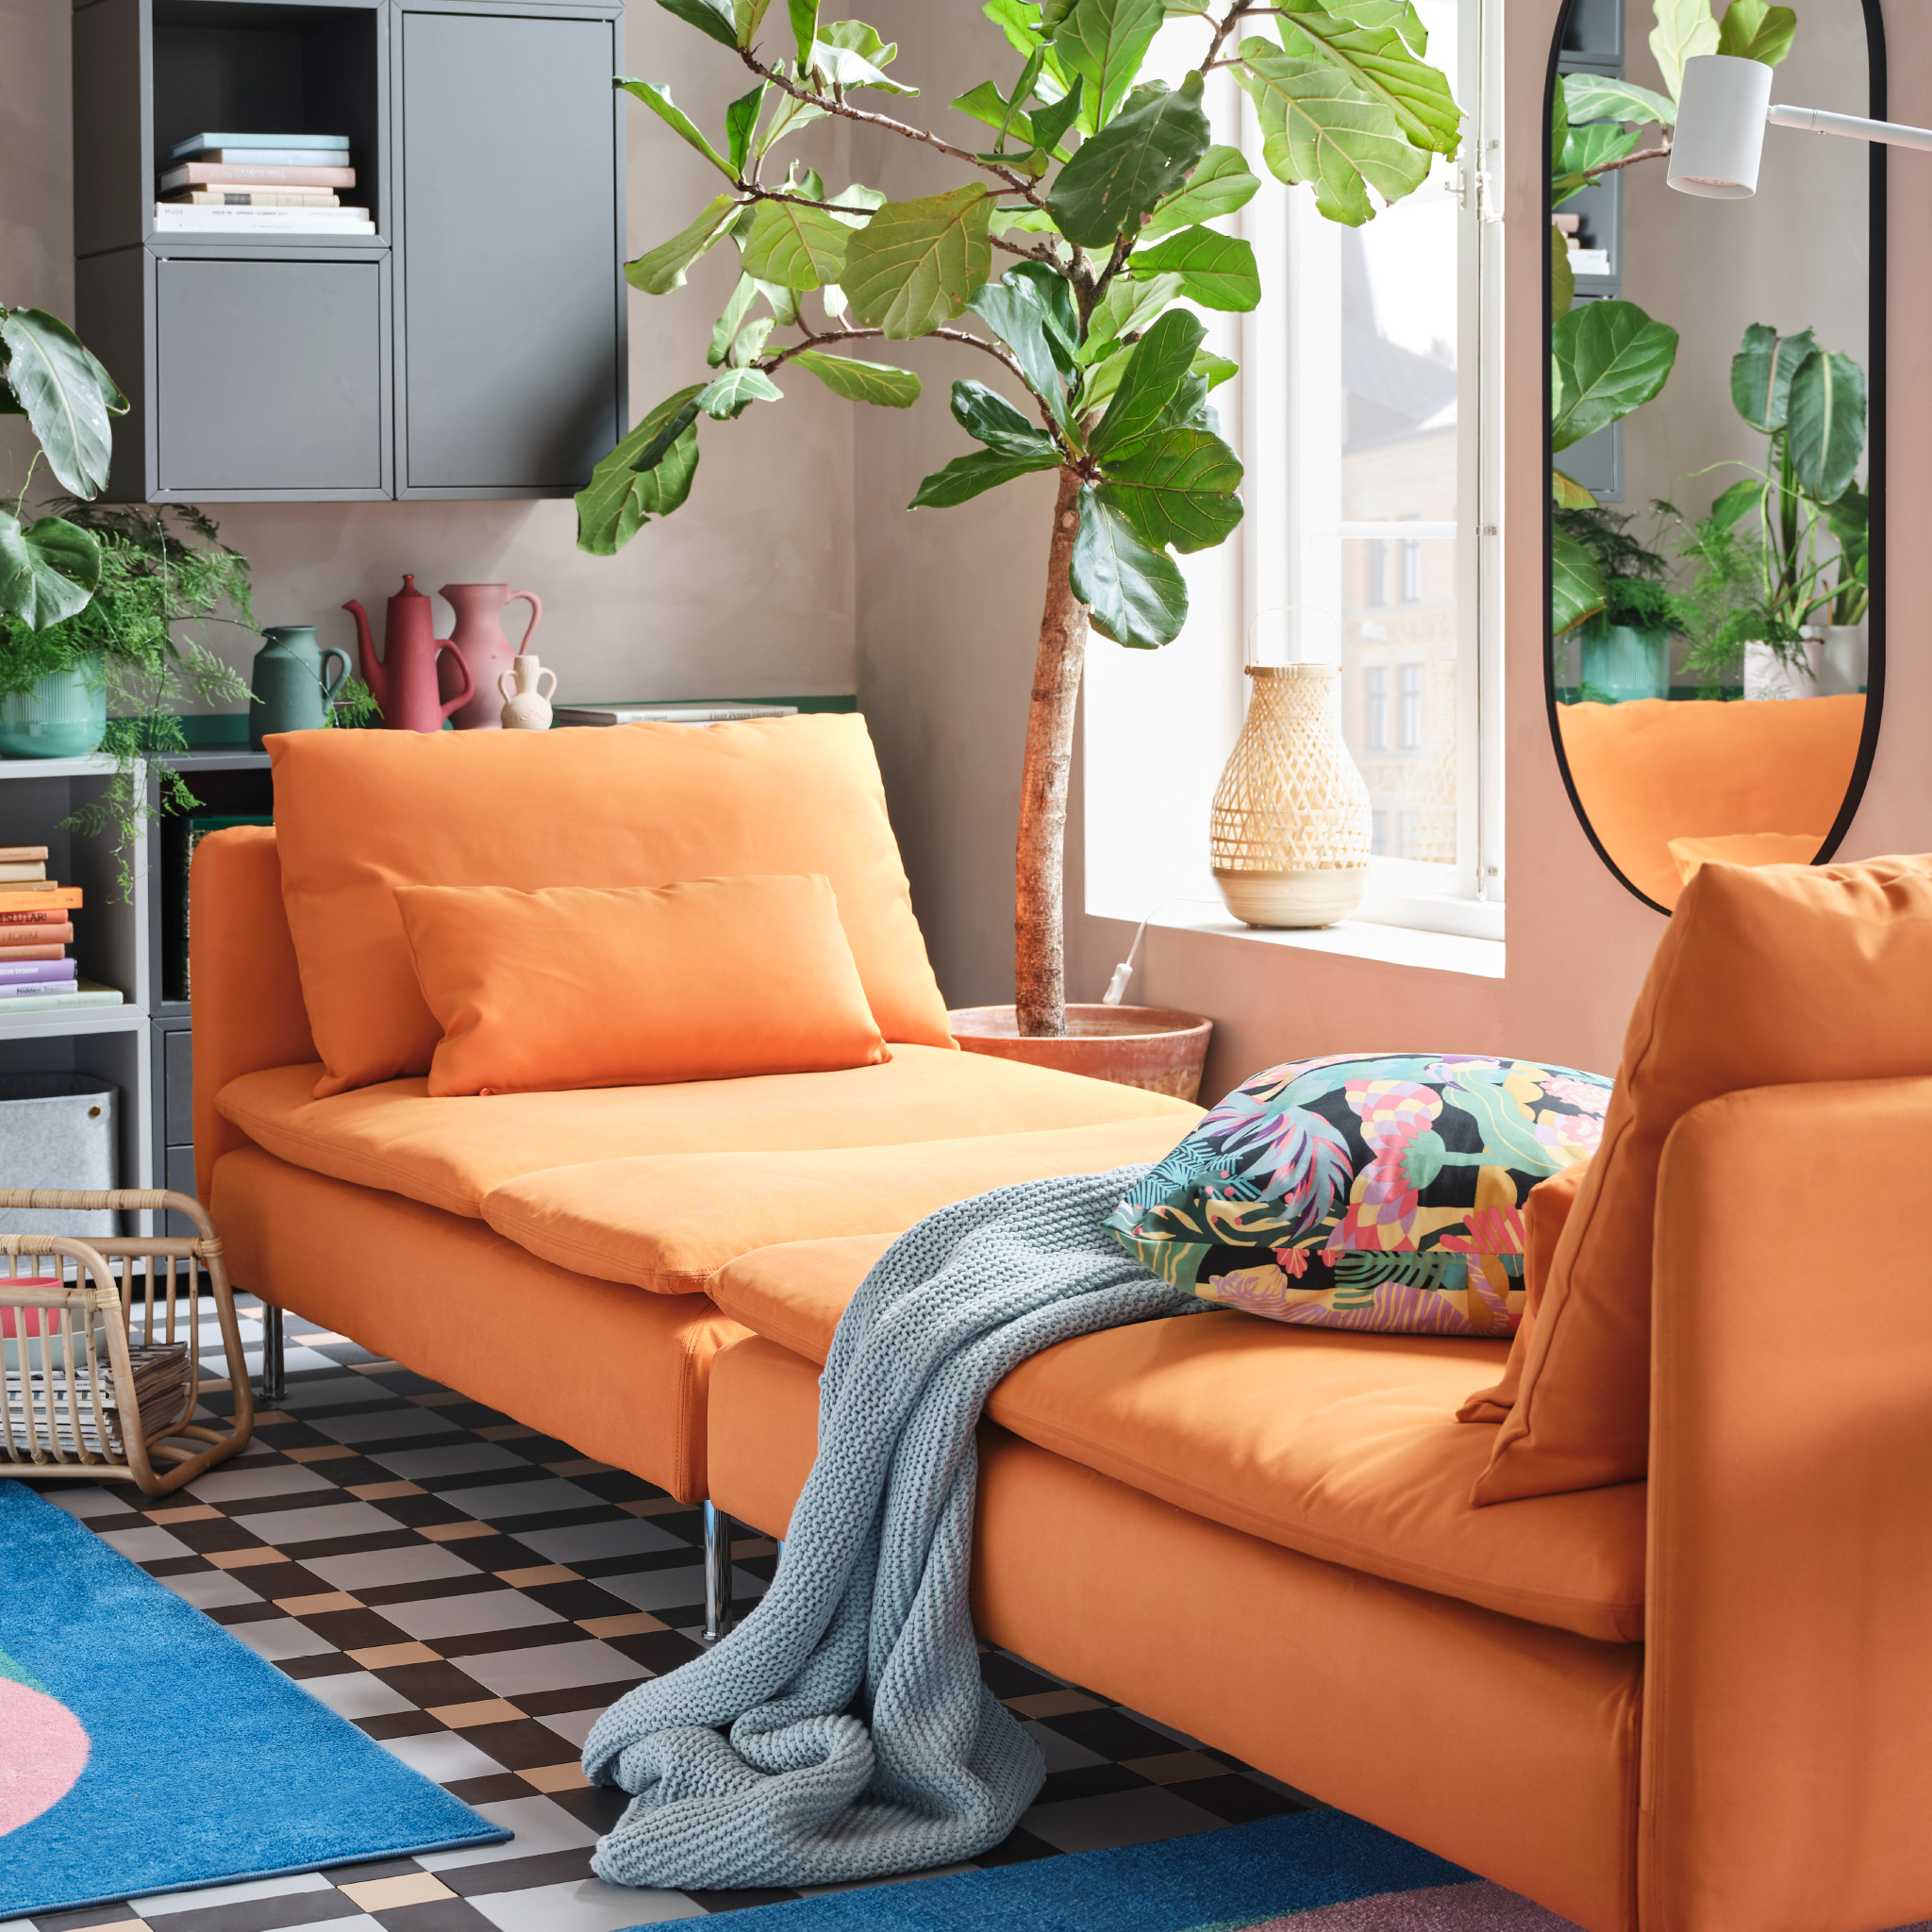 An orange 4-seat sofa with chaise longue, a green tray table, two rugs in pink/green/blue and two floor lamps in white.